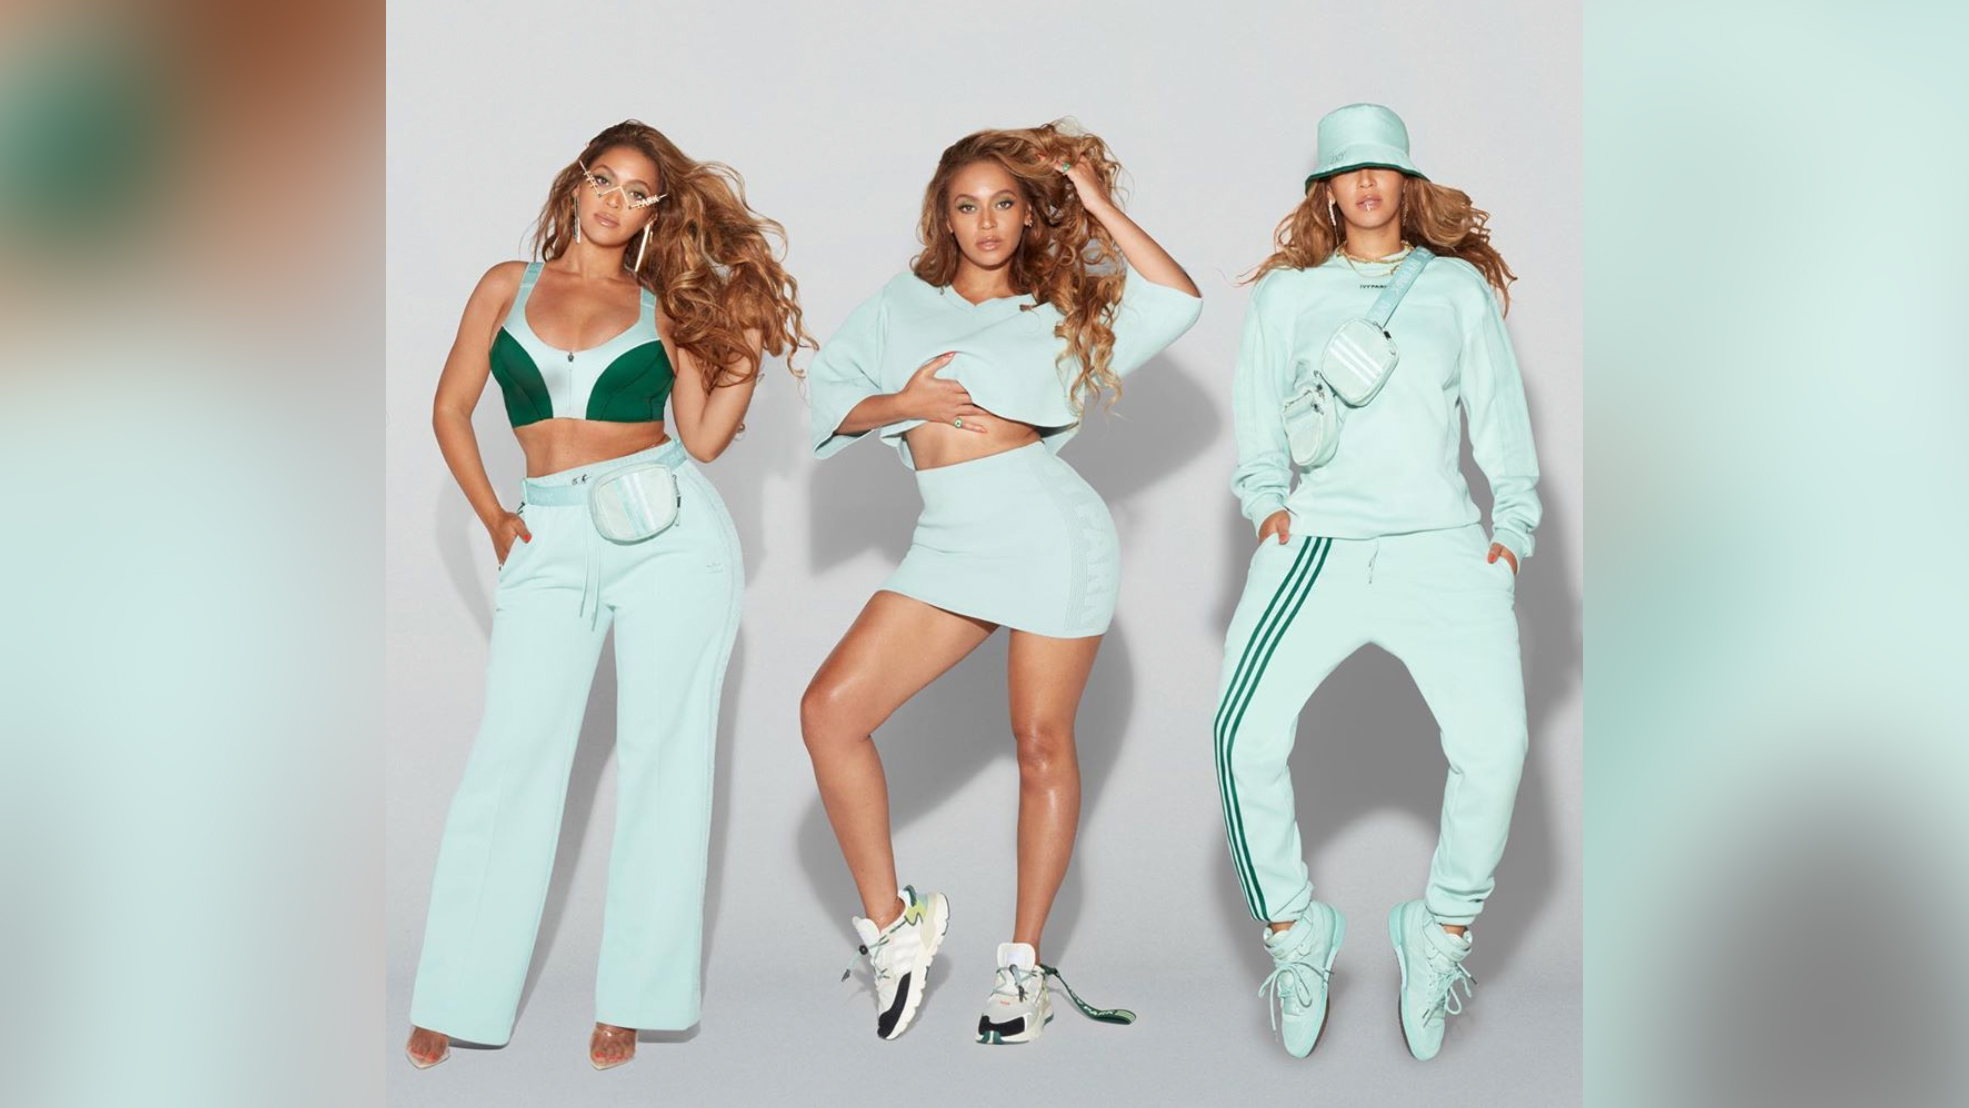 Beyoncé's latest Ivy Park x Adidas gear finally drops online